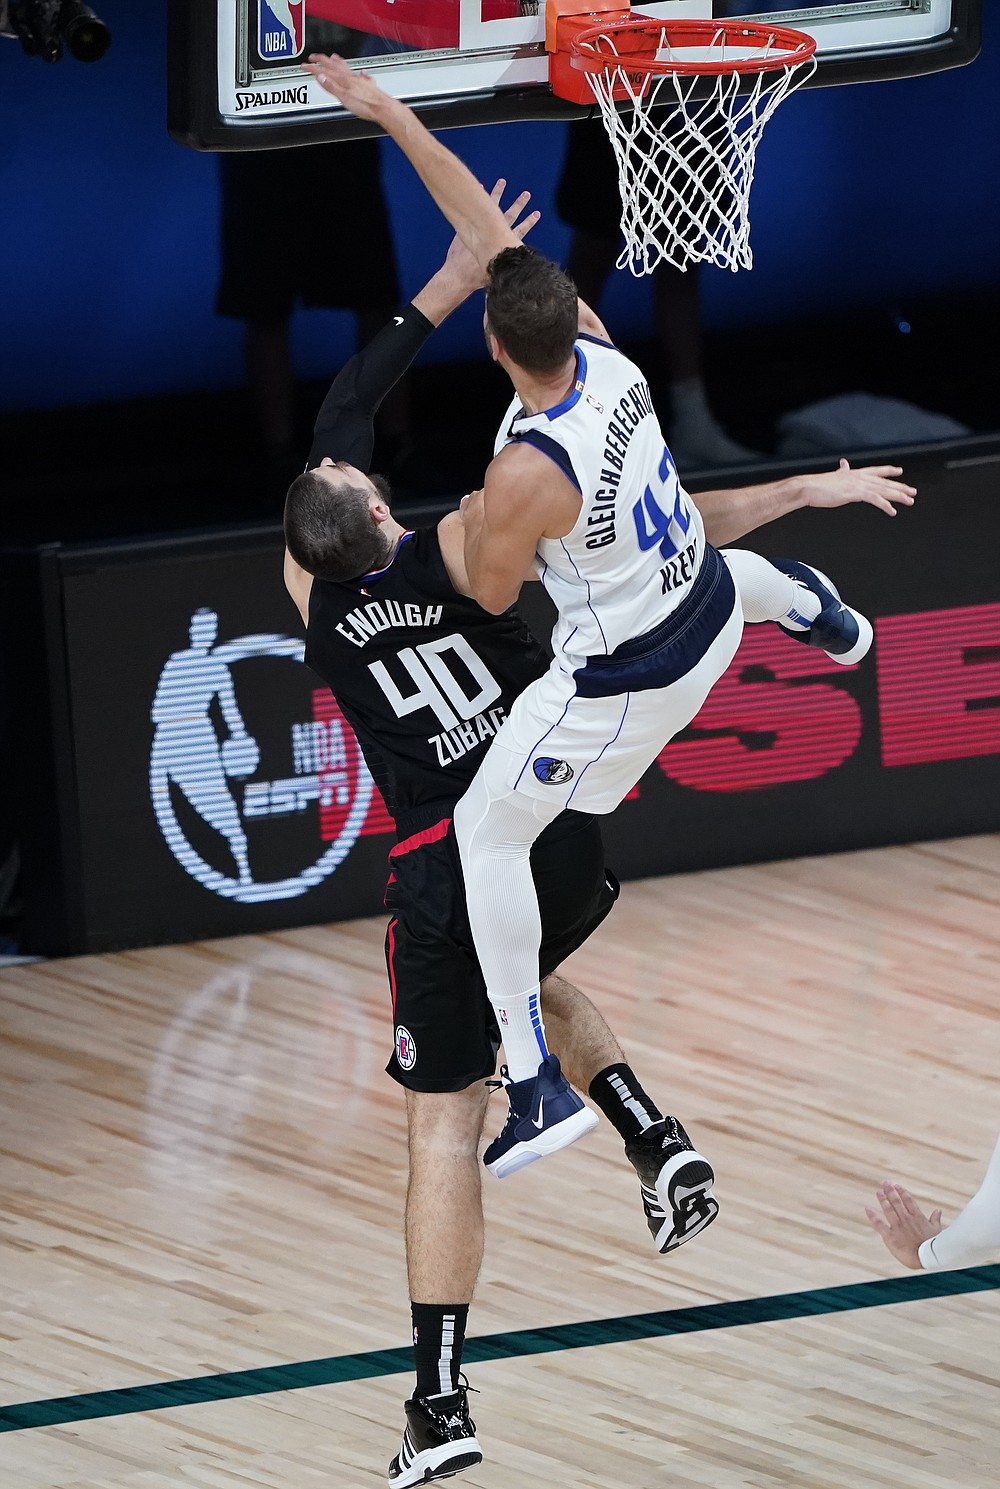 Dallas Mavericks' Maxi Kleber (42) fouls Los Angeles Clippers' Ivica Zubac (40) during the second half of an NBA first round playoff game Sunday, Aug. 30, 2020, in Lake Buena Vista, Fla. (AP Photo/Ashley Landis)